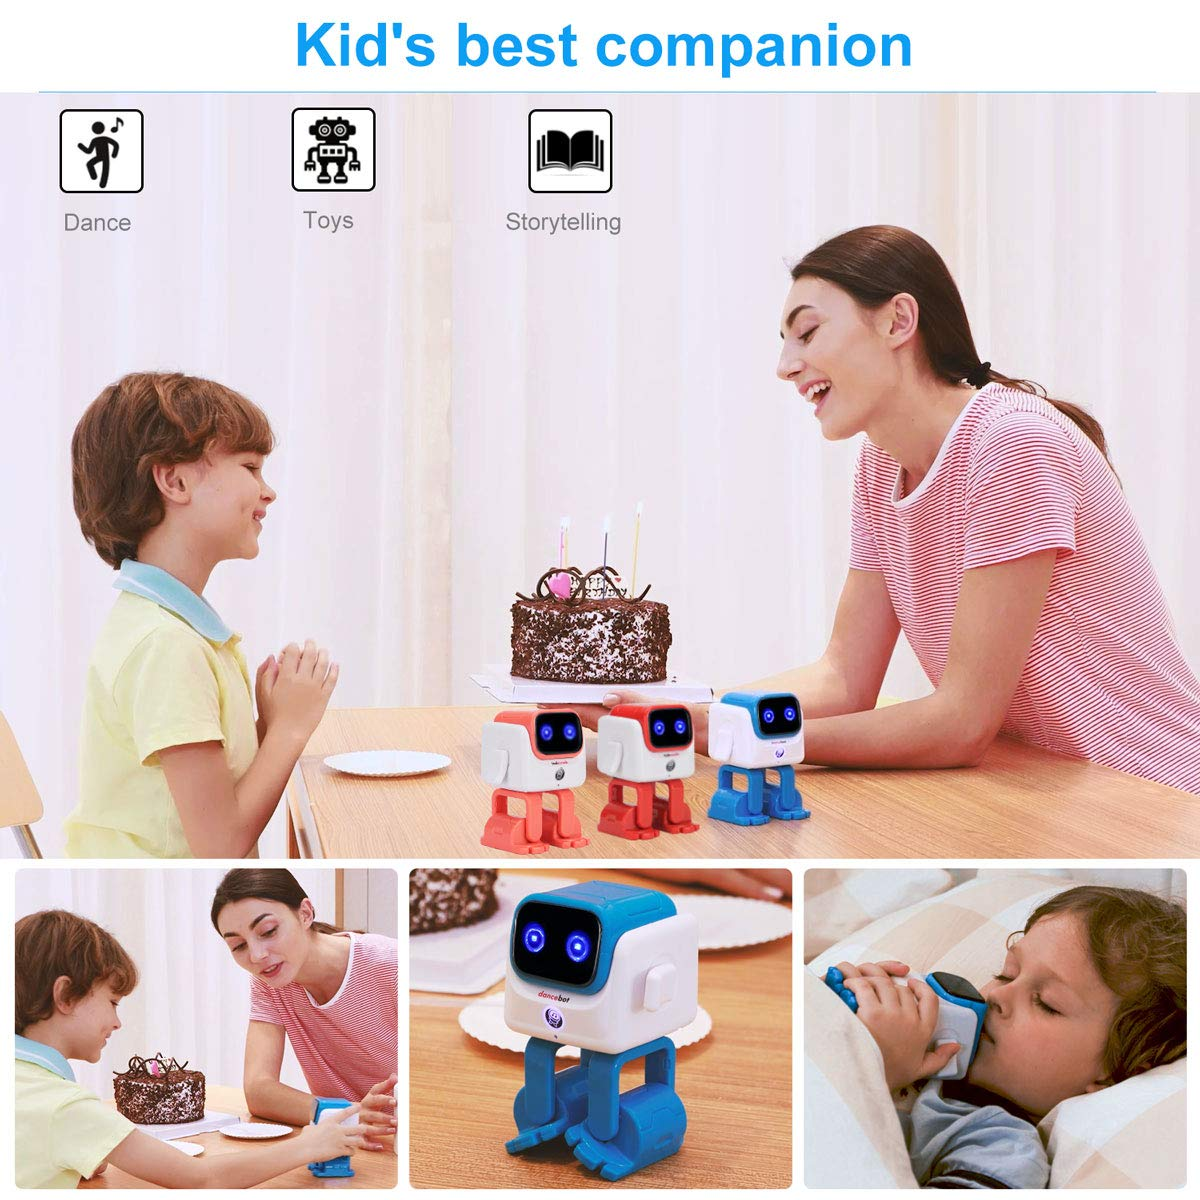 ECHEERS Dance Robot Toys for Kids, Boys and Girls, Educational Music Dancing Robot Kids Toys, Rechargeable Music Robot Speaker Follow Beats Rhythm, 3 Years+ Coral by ECHEERS (Image #7)